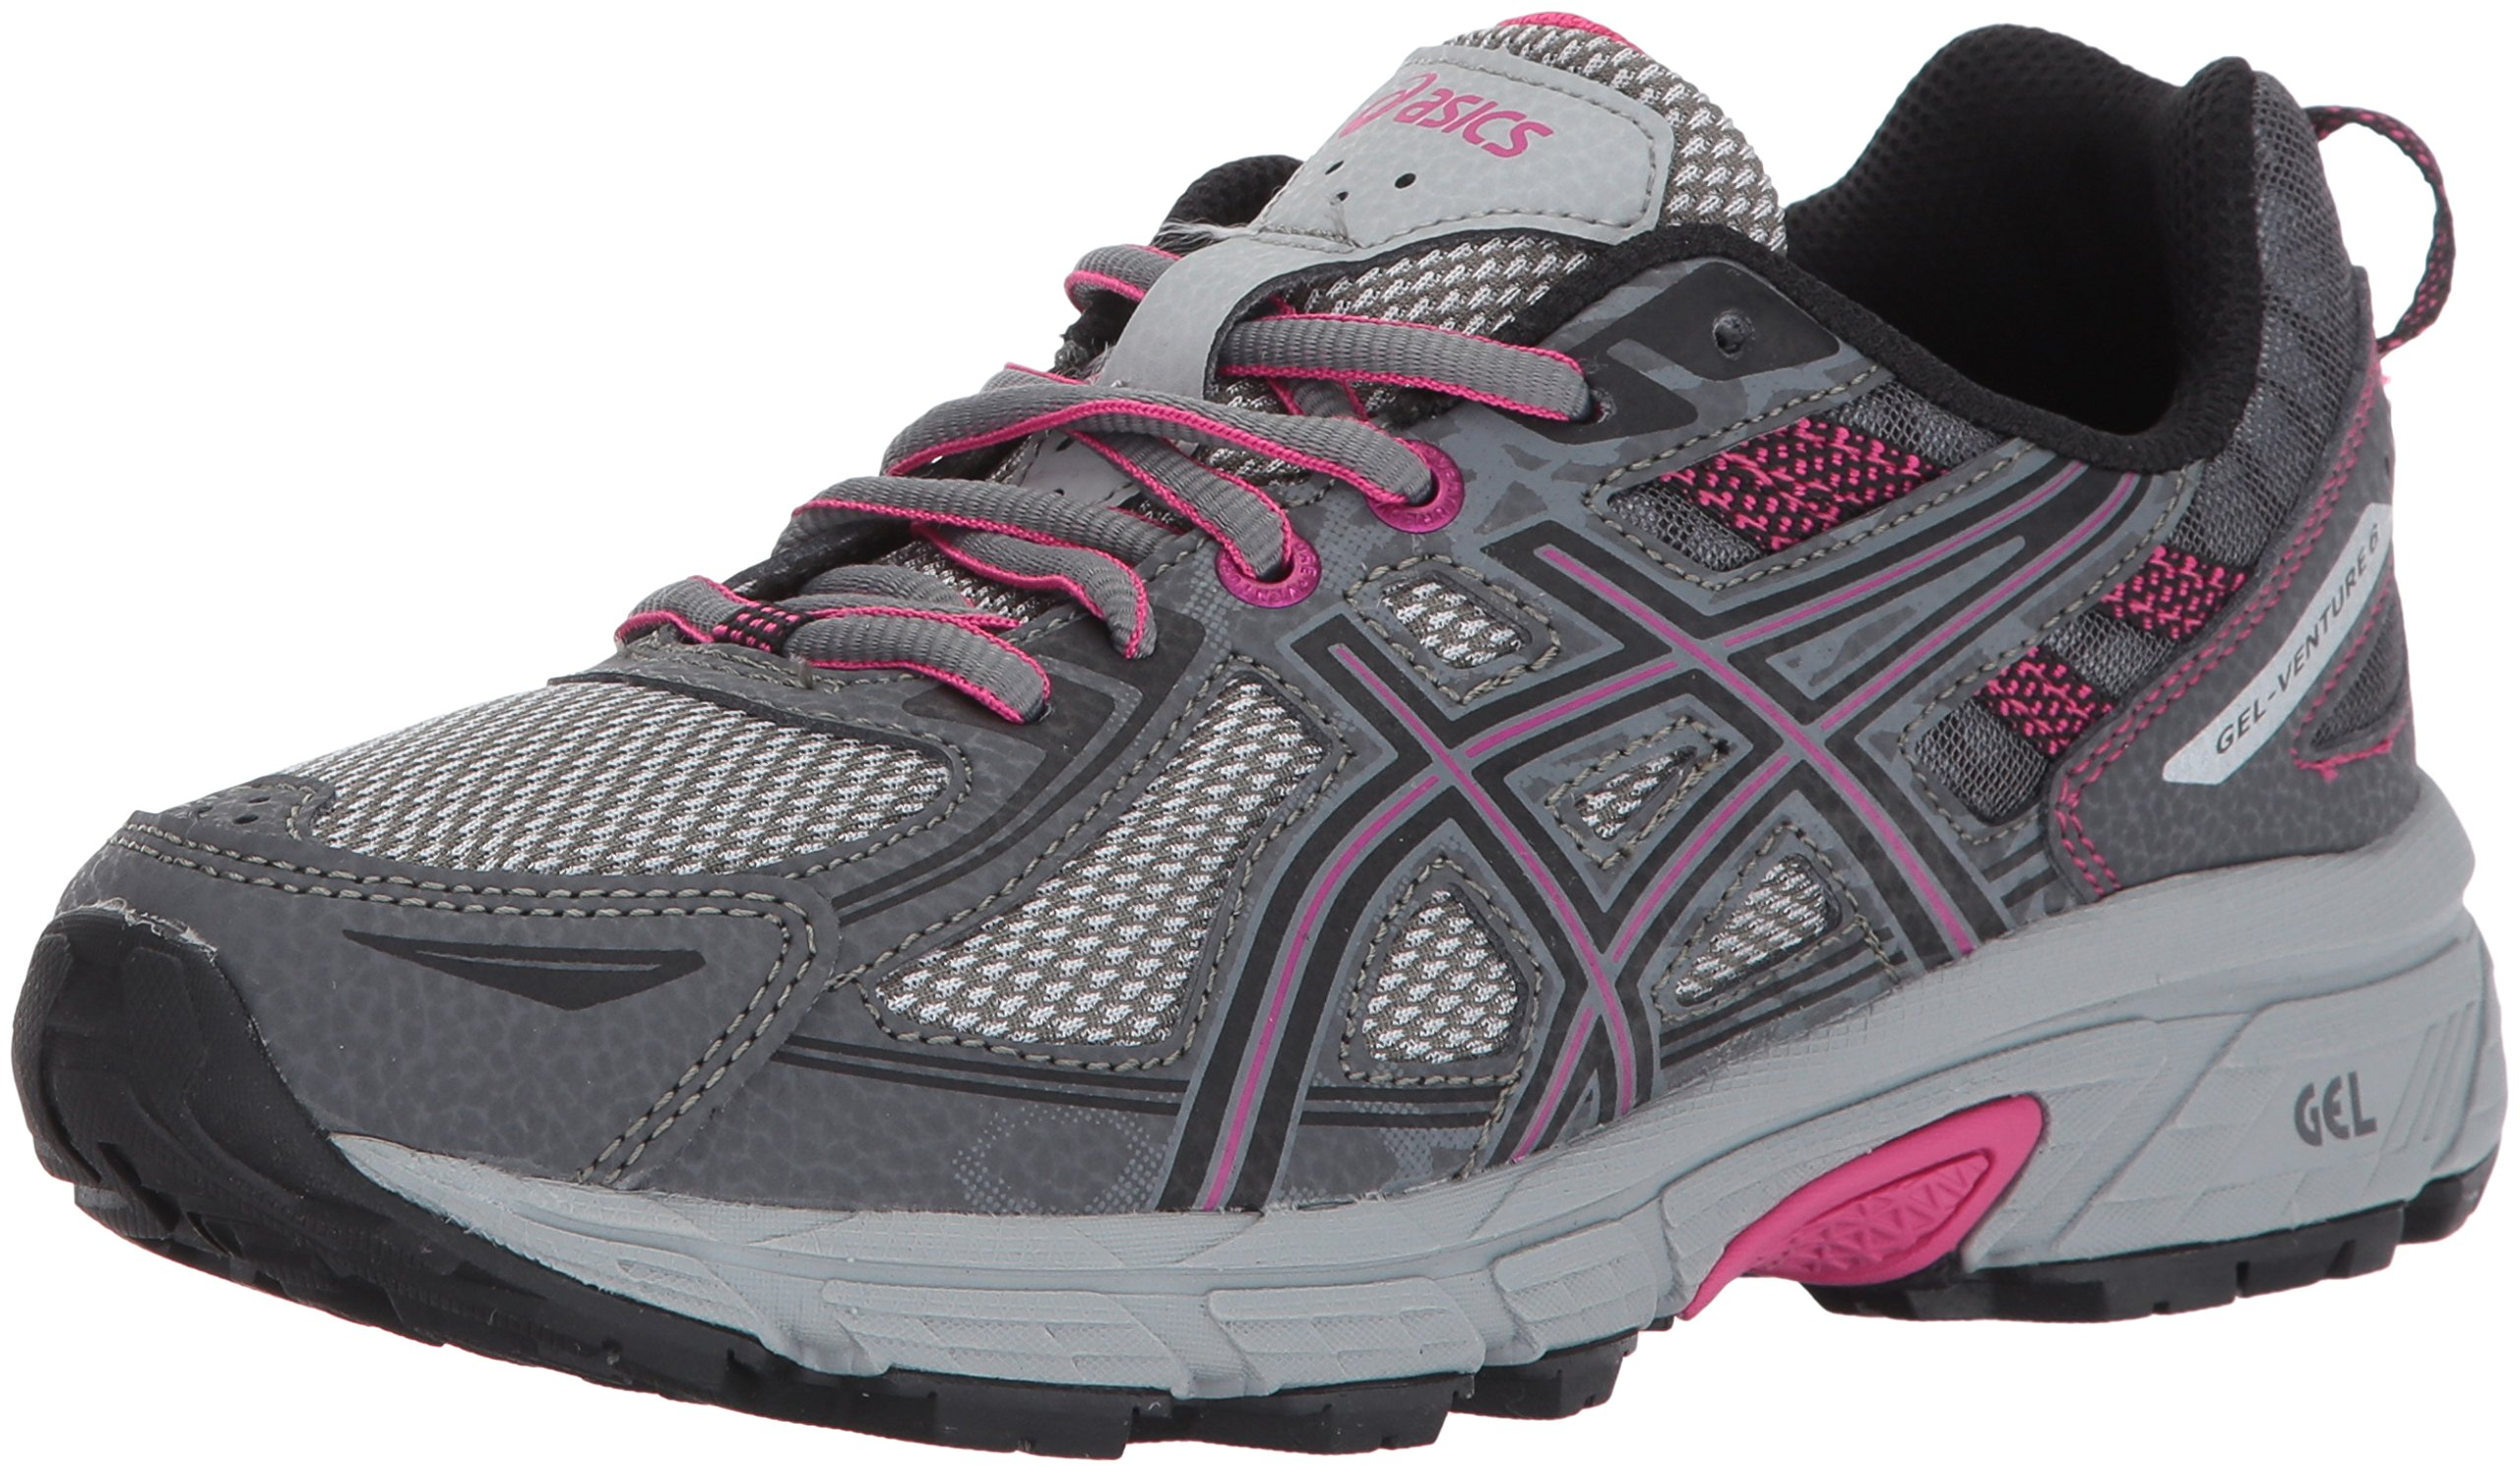 ASICS Women's Gel-Venture 6 Running-Shoes,Carbon/Black/Pink Peacock,5 D US